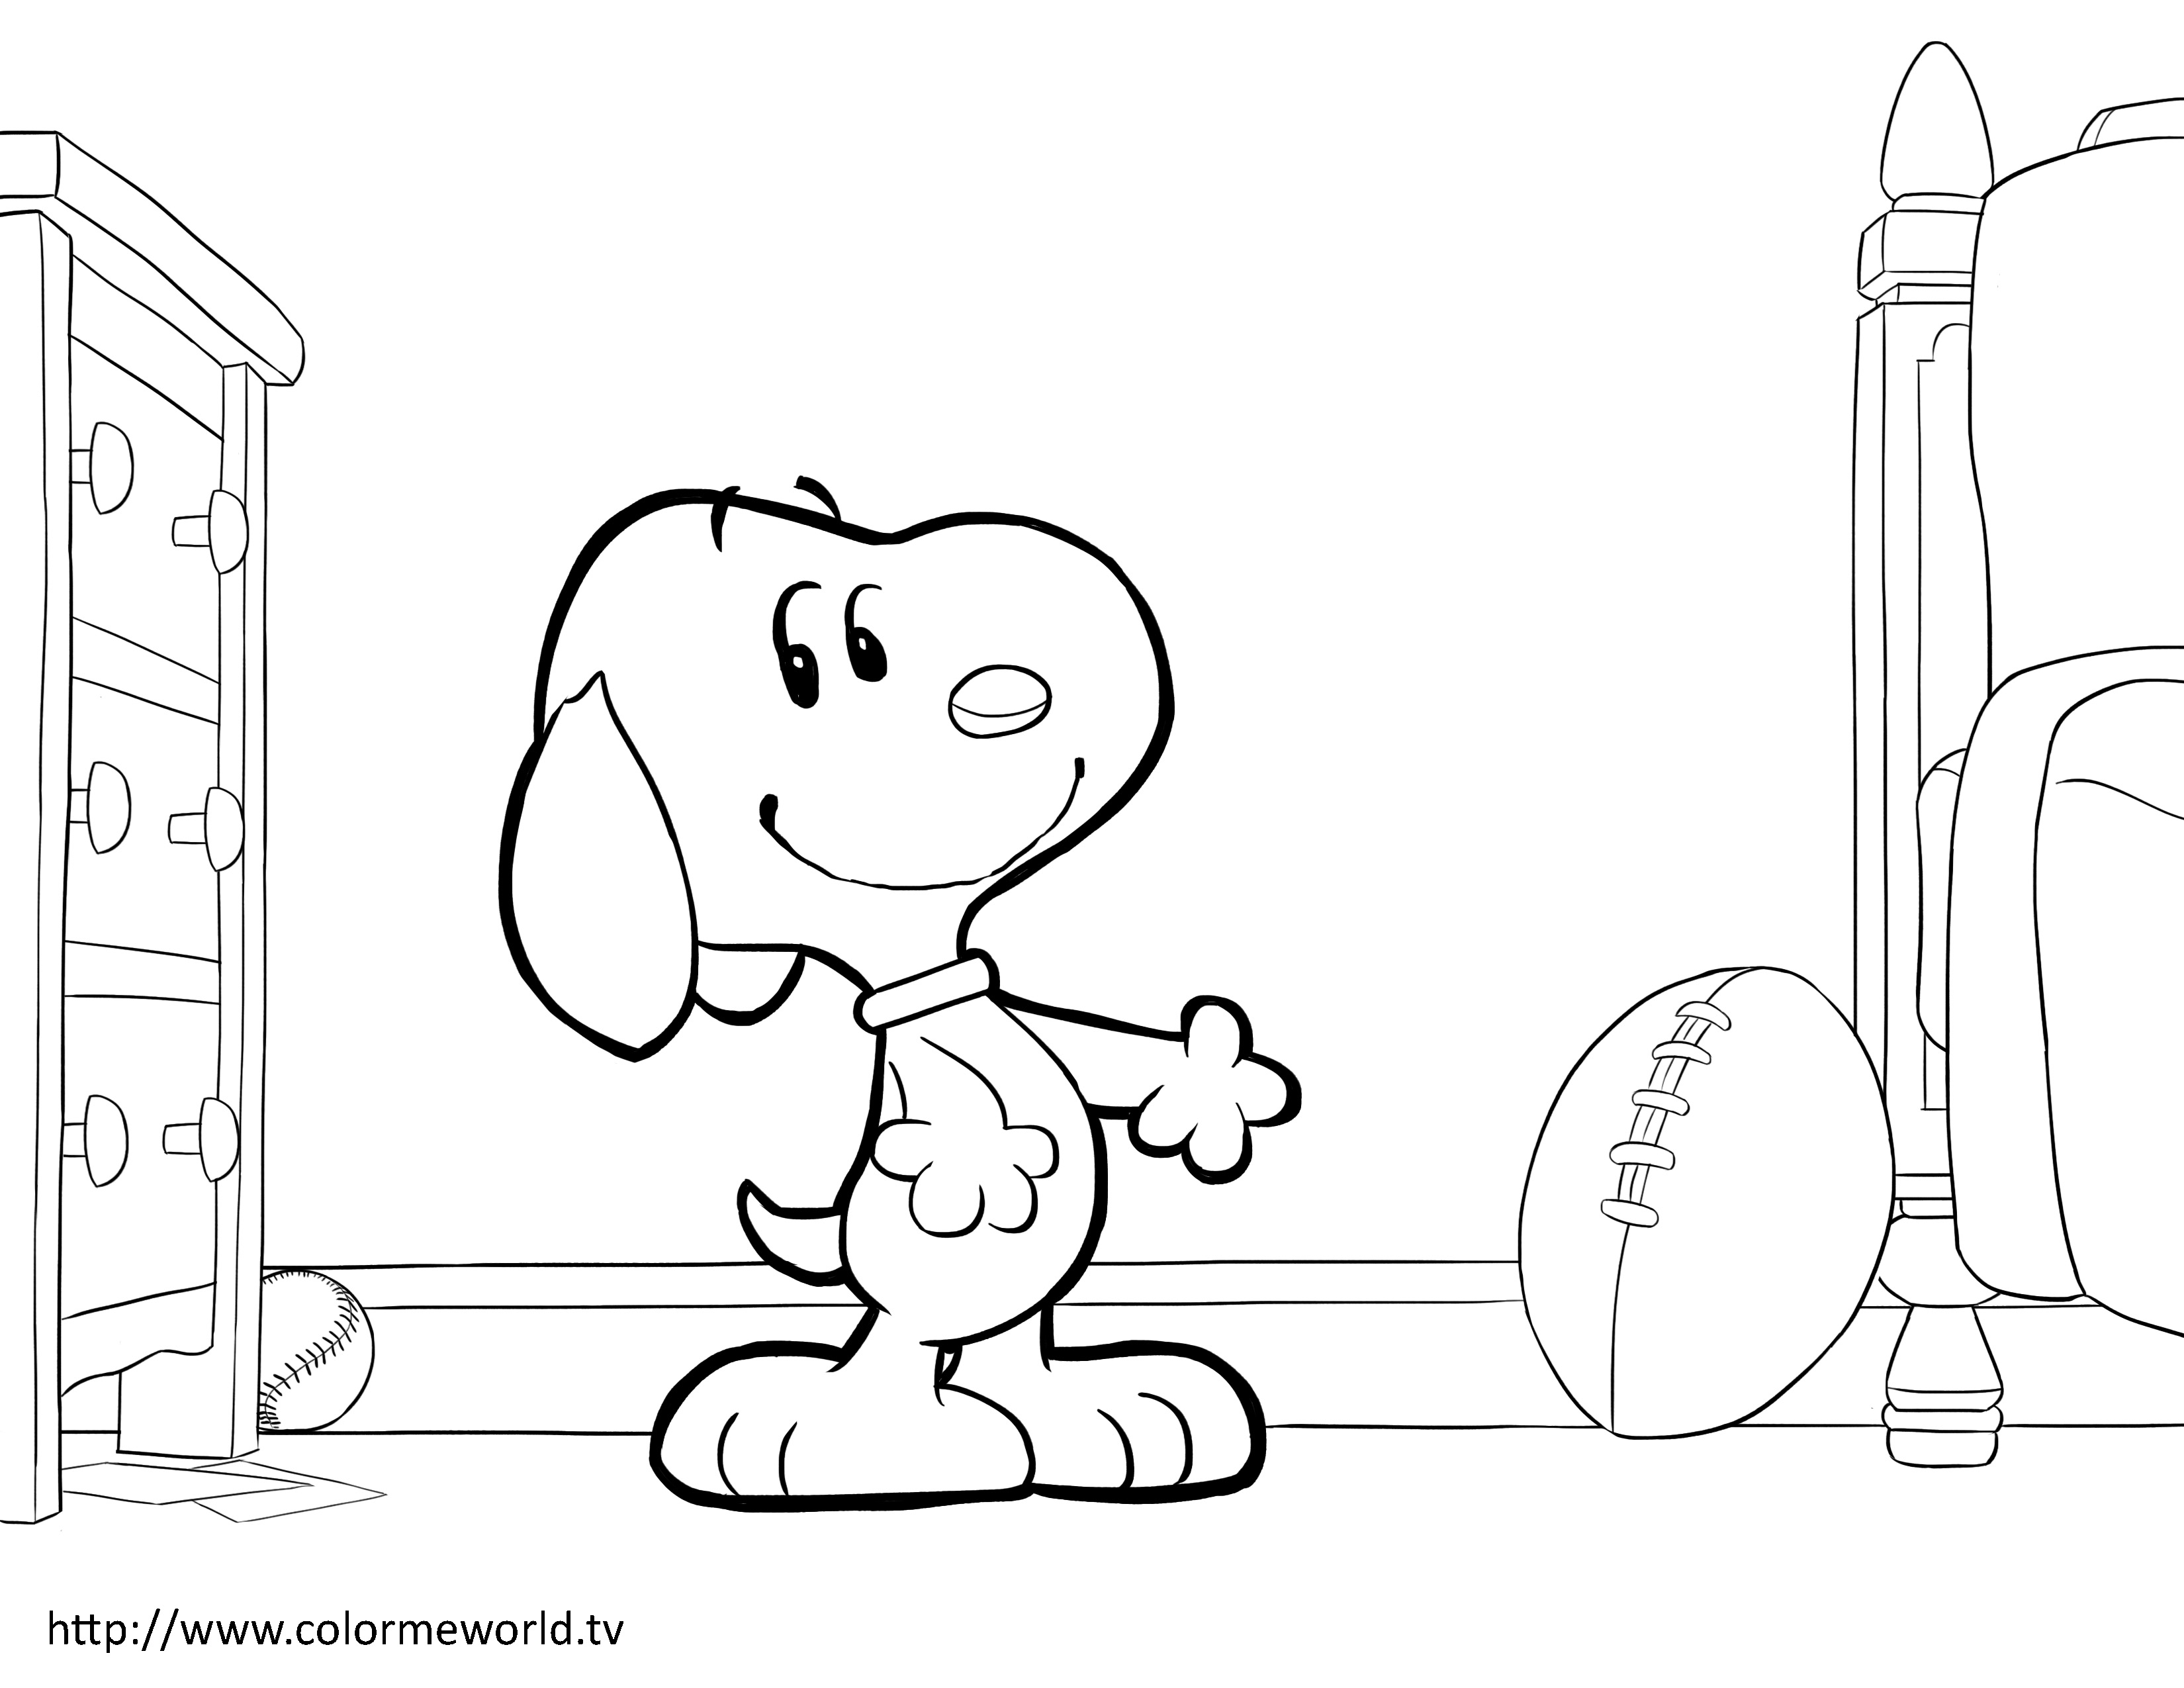 3300x2550 Best Of Best Snoopy Images On Free Coloring Pages